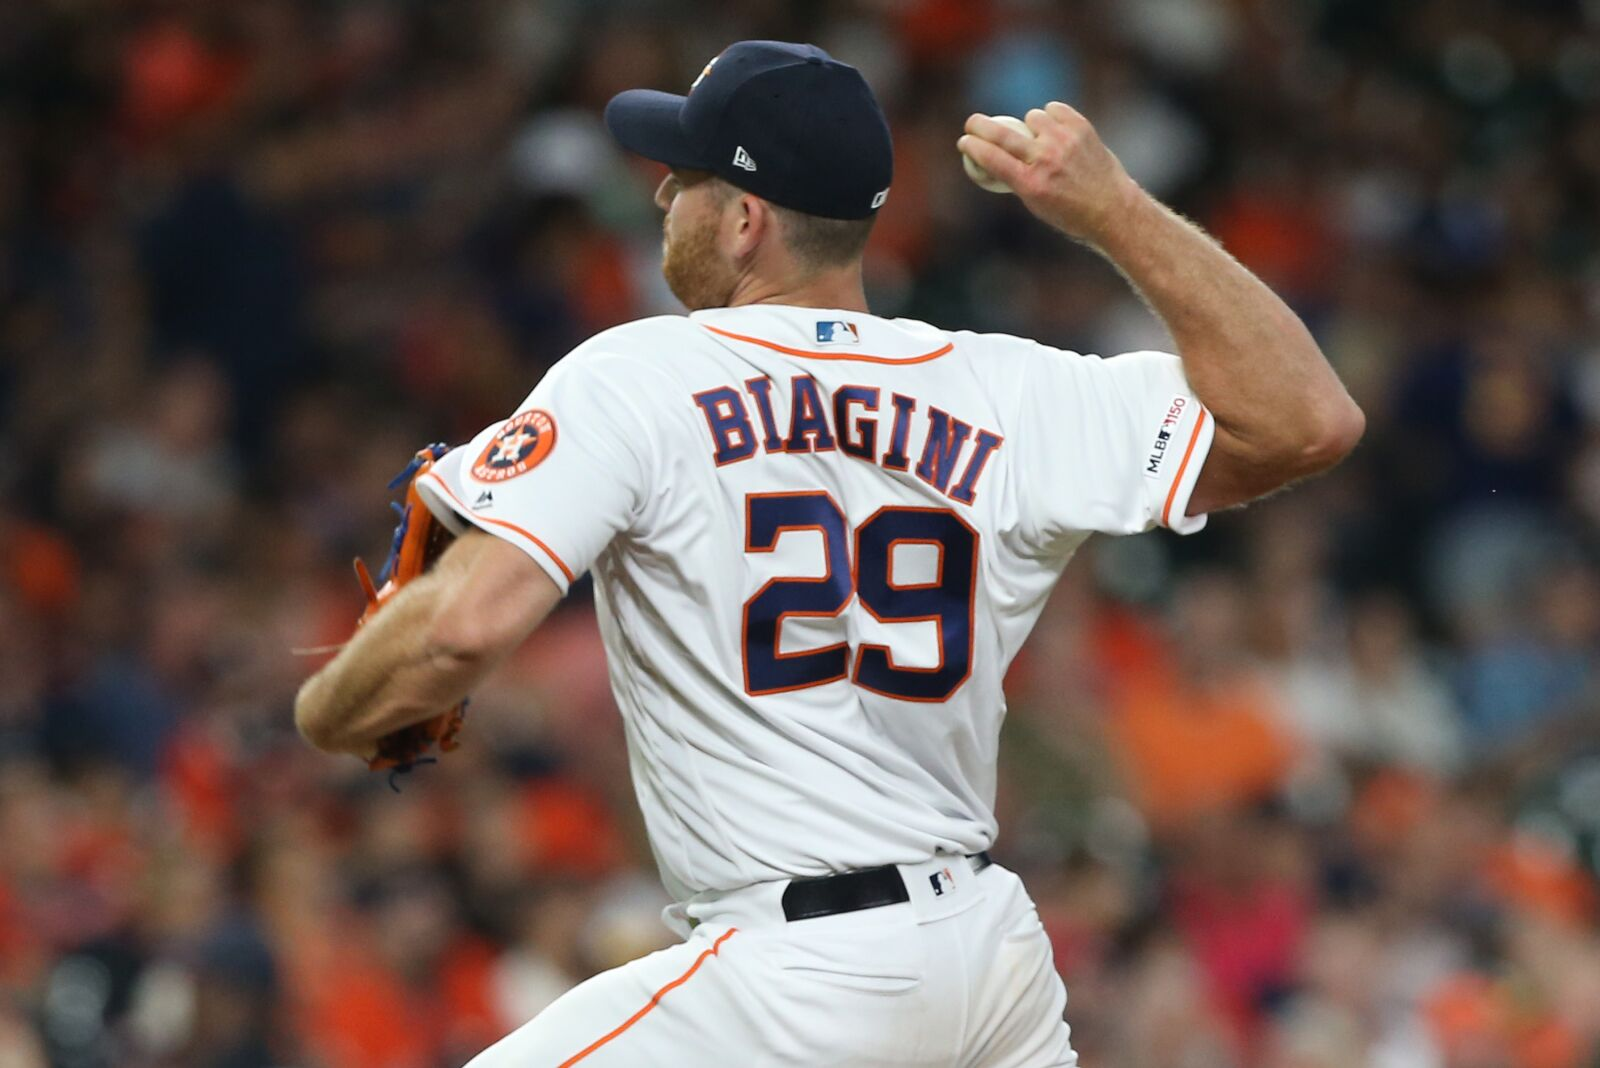 Astros and Joe Biagini agree to a contract, eight other players tendered